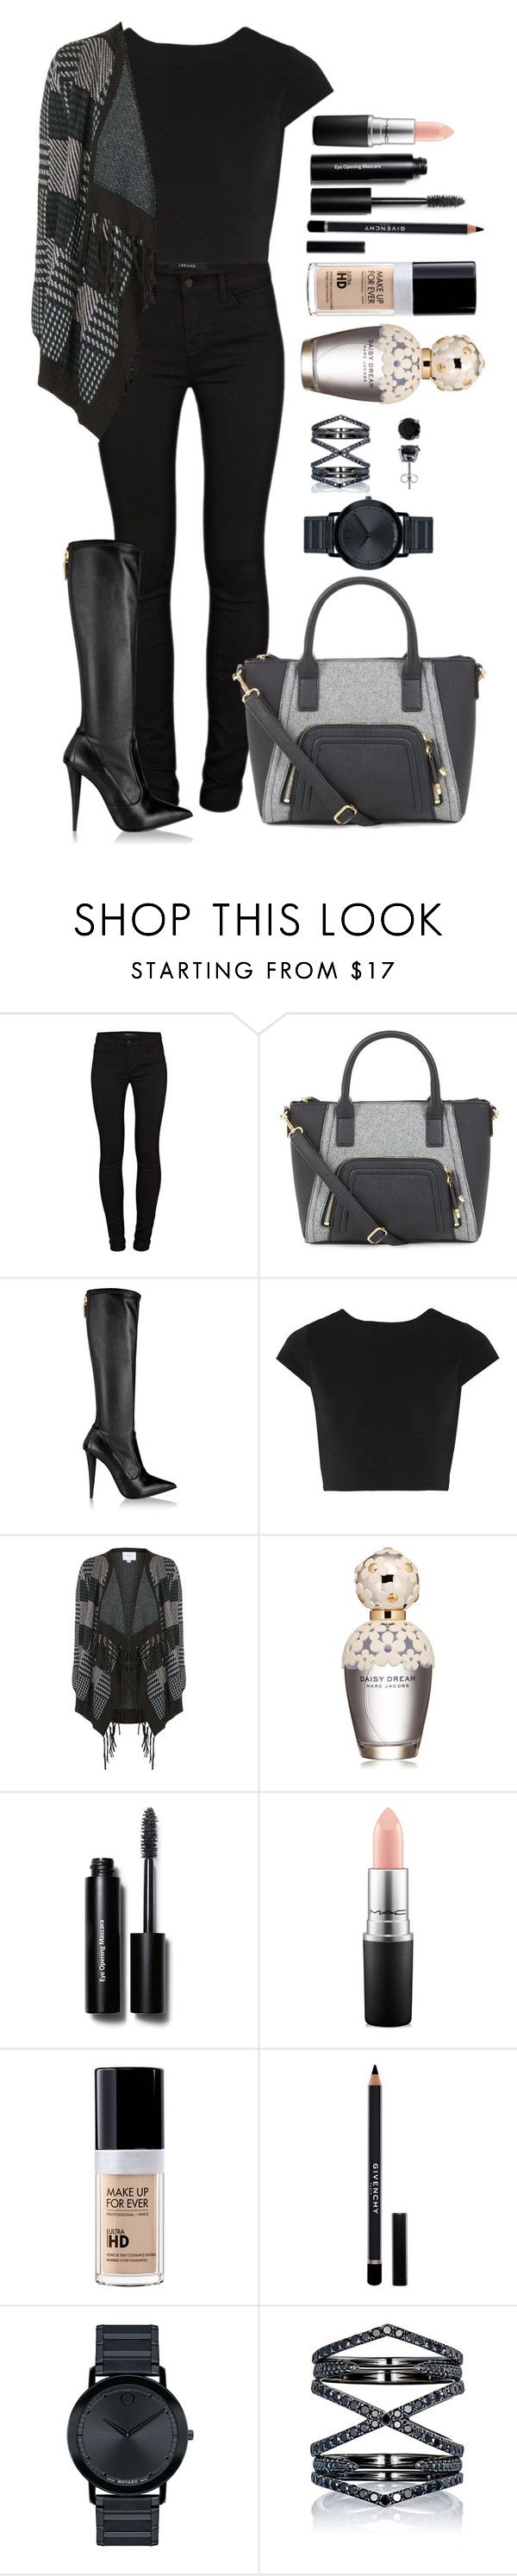 """""""Untitled #1332"""" by fabianarveloc on Polyvore featuring J Brand, Giuseppe Zanotti, Alice + Olivia, Topshop, Marc Jacobs, Bobbi Brown Cosmetics, MAC Cosmetics, MAKE UP FOR EVER, Givenchy and Movado"""